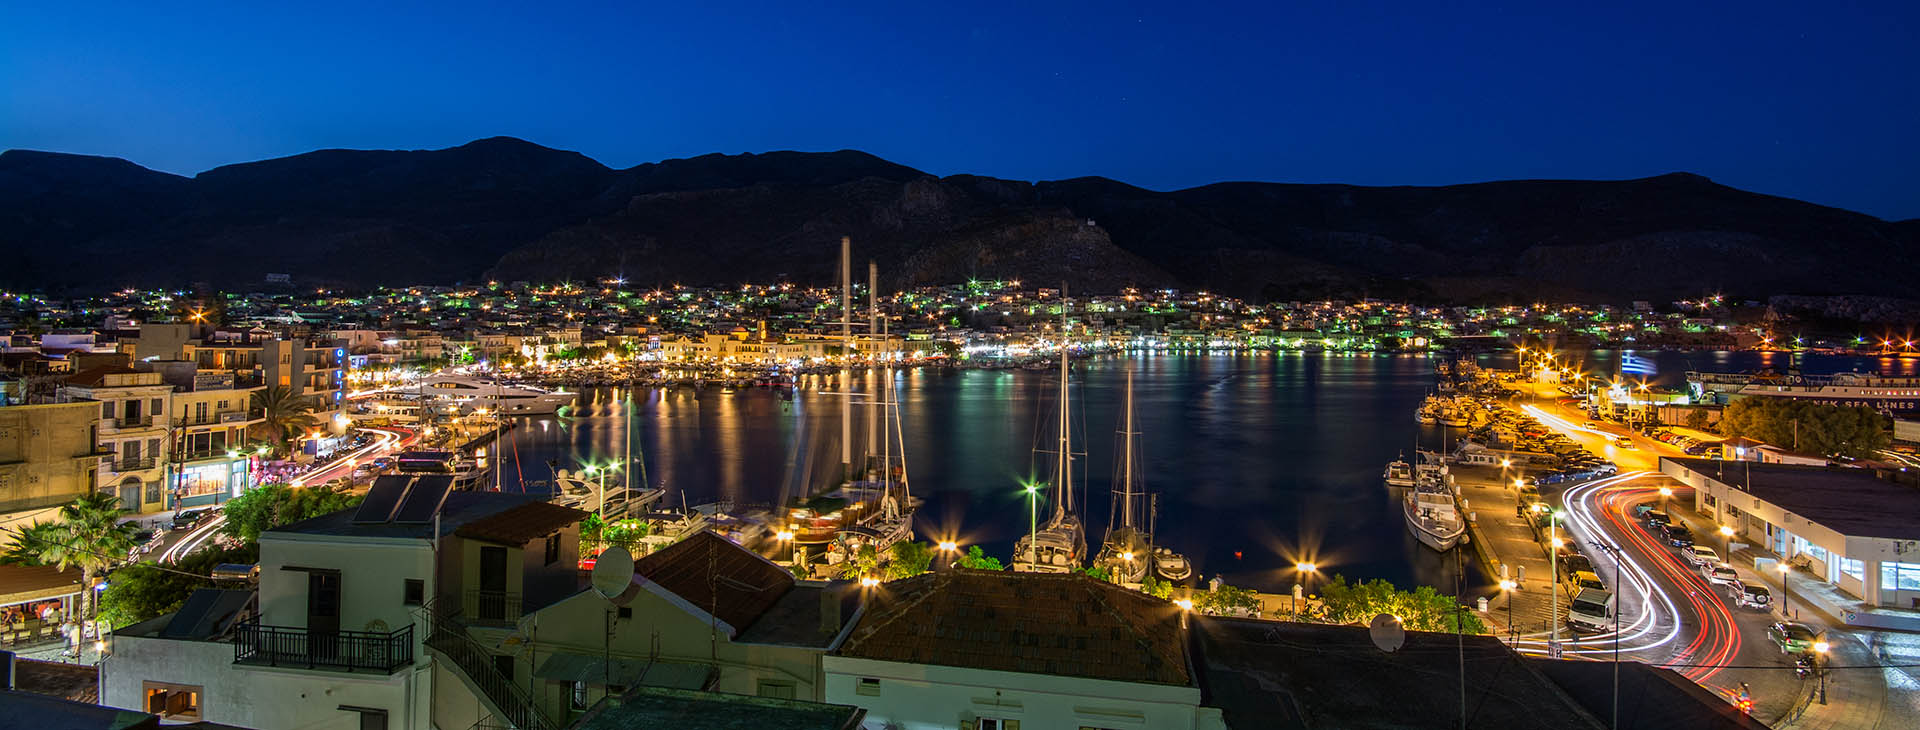 Kalimnos harbour by night